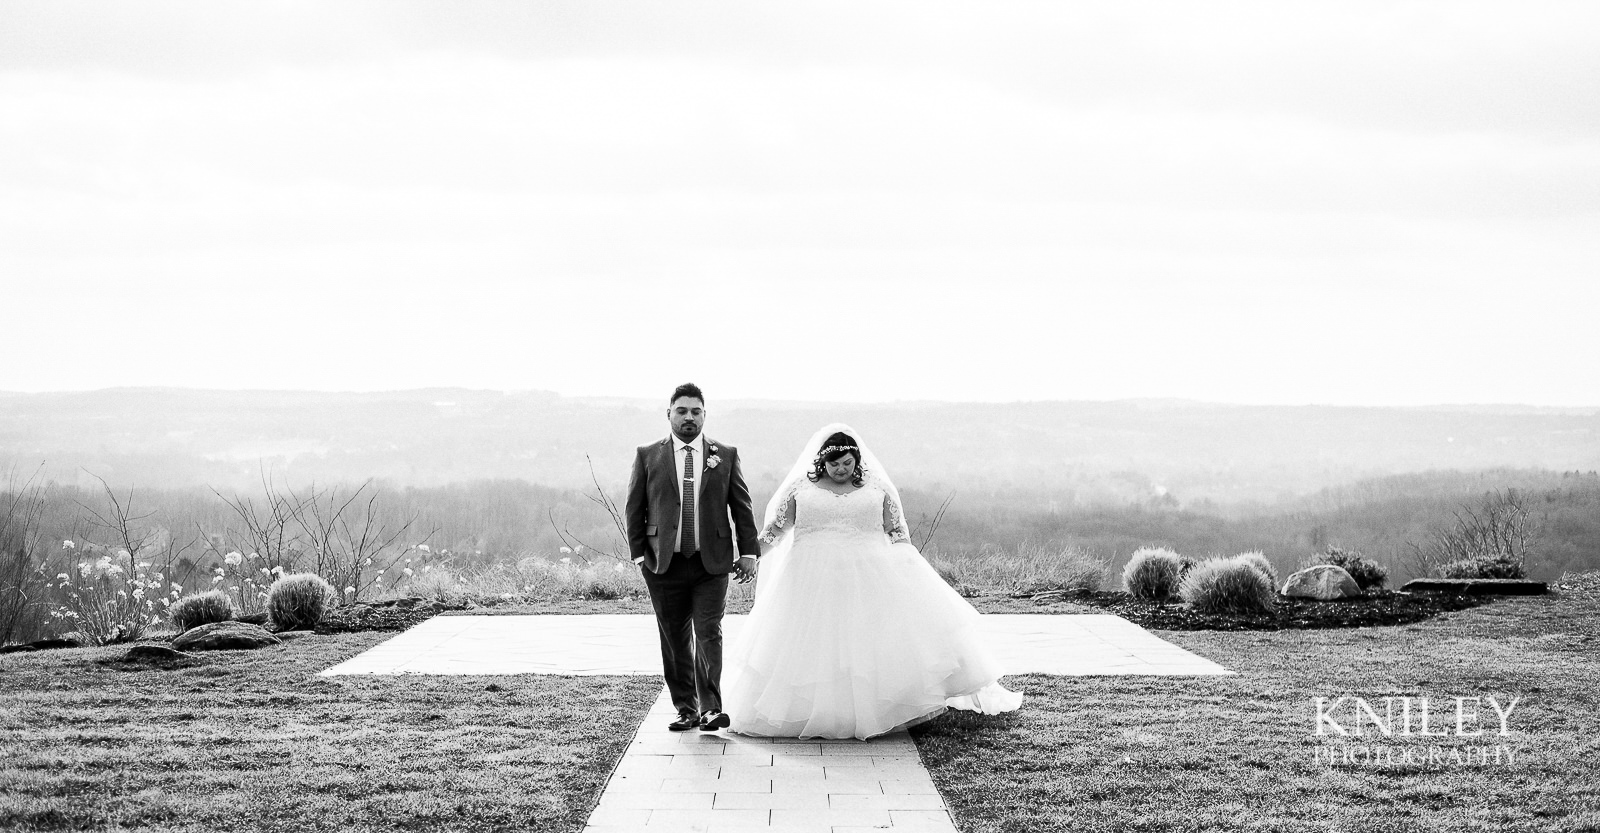 063 - Woodcliff Hotel - Rochester NY wedding photo - Kniley Photography.jpg